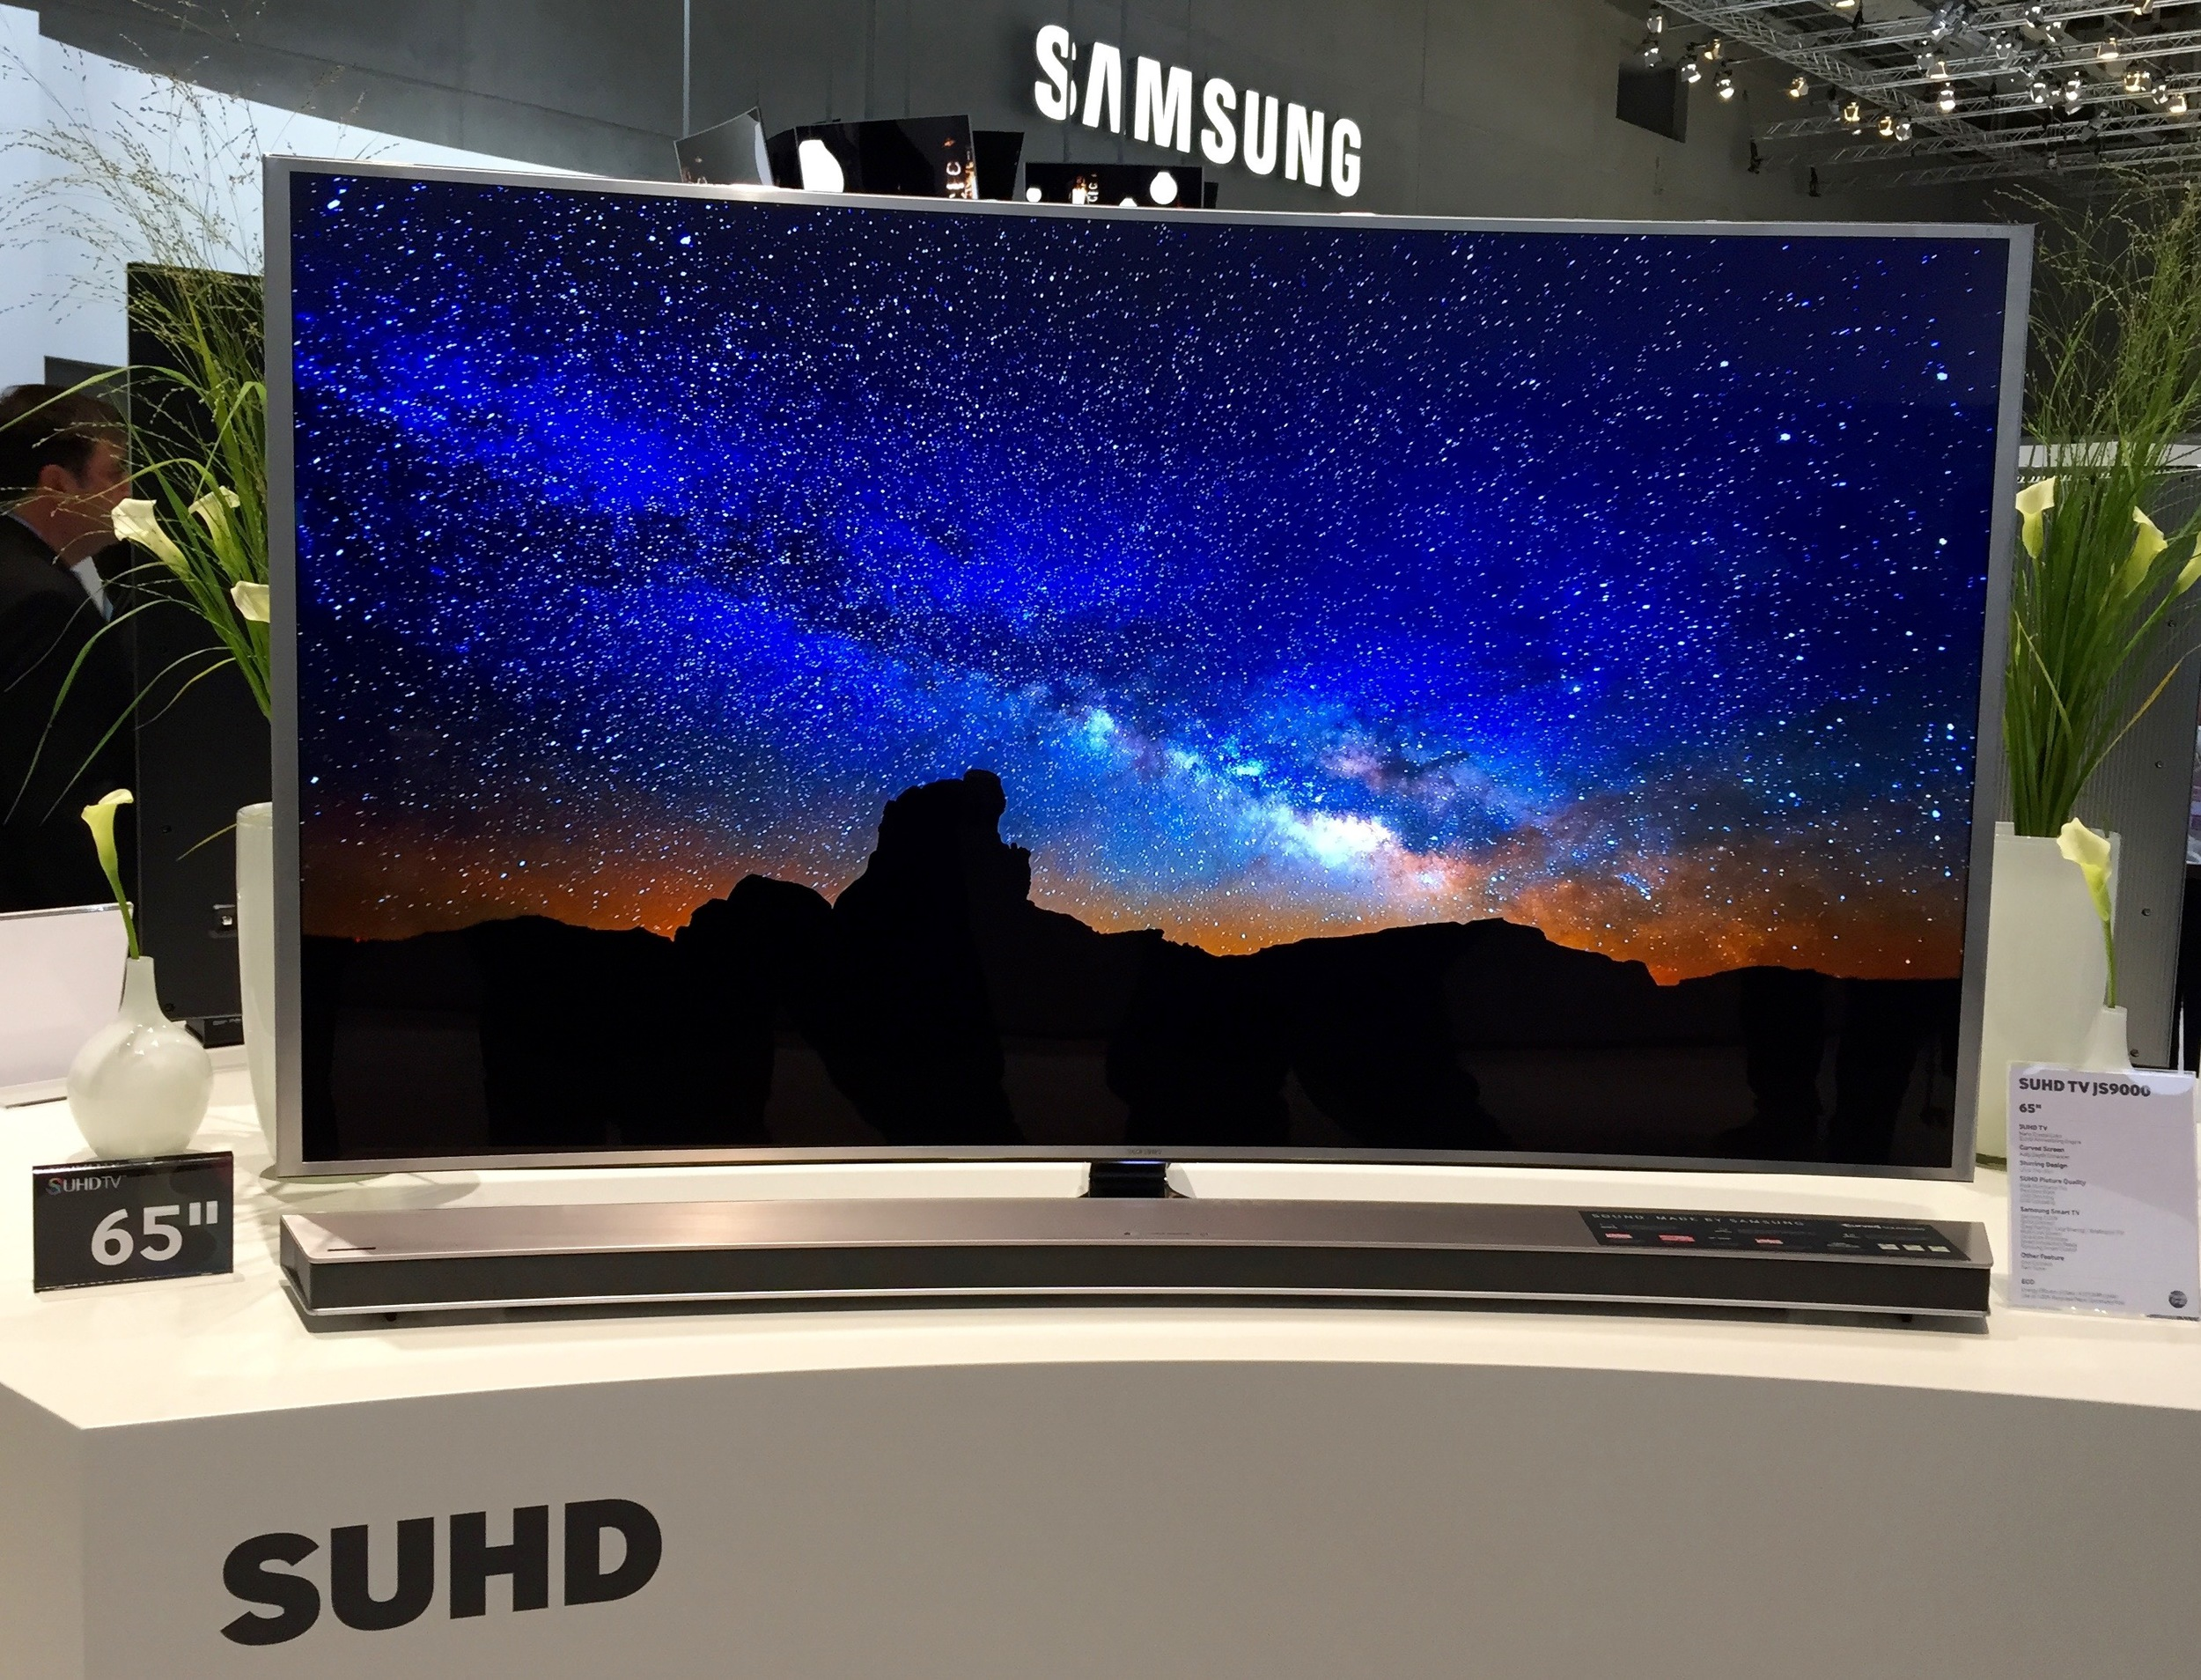 Samsung's flagship SUHD, featuring Quantum Dot technology, hooked up to their new UltraHD Blu-ray player made for an impressive next-generation TV demo at IFA 2015.